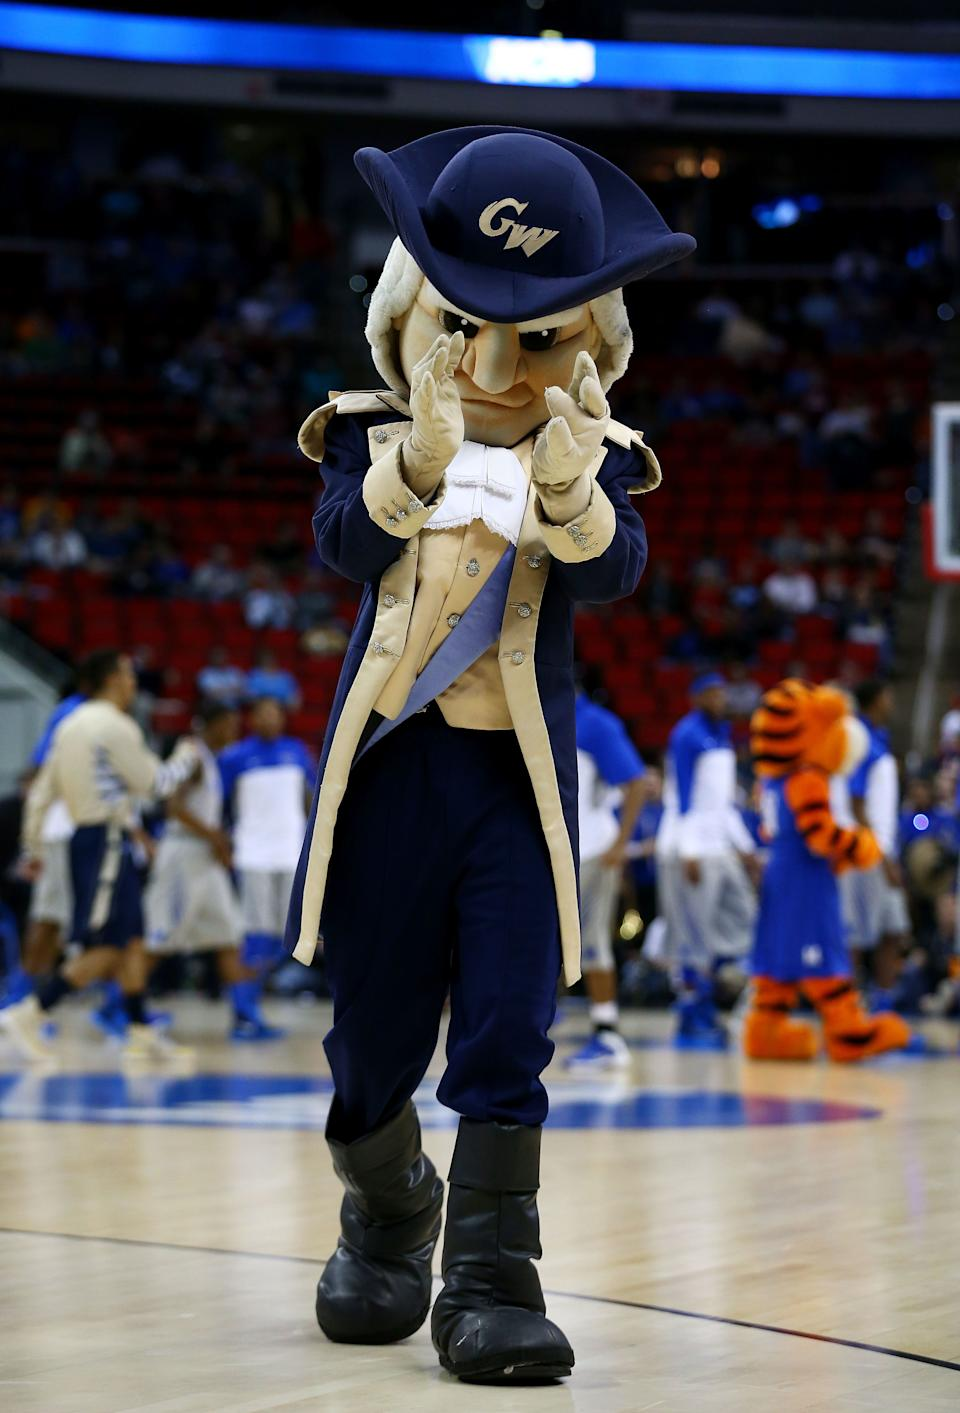 RALEIGH, NC - MARCH 21:  George Washington Colonials mascot, George, performs in the first half against the Memphis Tigers during the Second Round of the 2014 NCAA Basketball Tournament at PNC Arena on March 21, 2014 in Raleigh, North Carolina.  (Photo by Streeter Lecka/Getty Images)